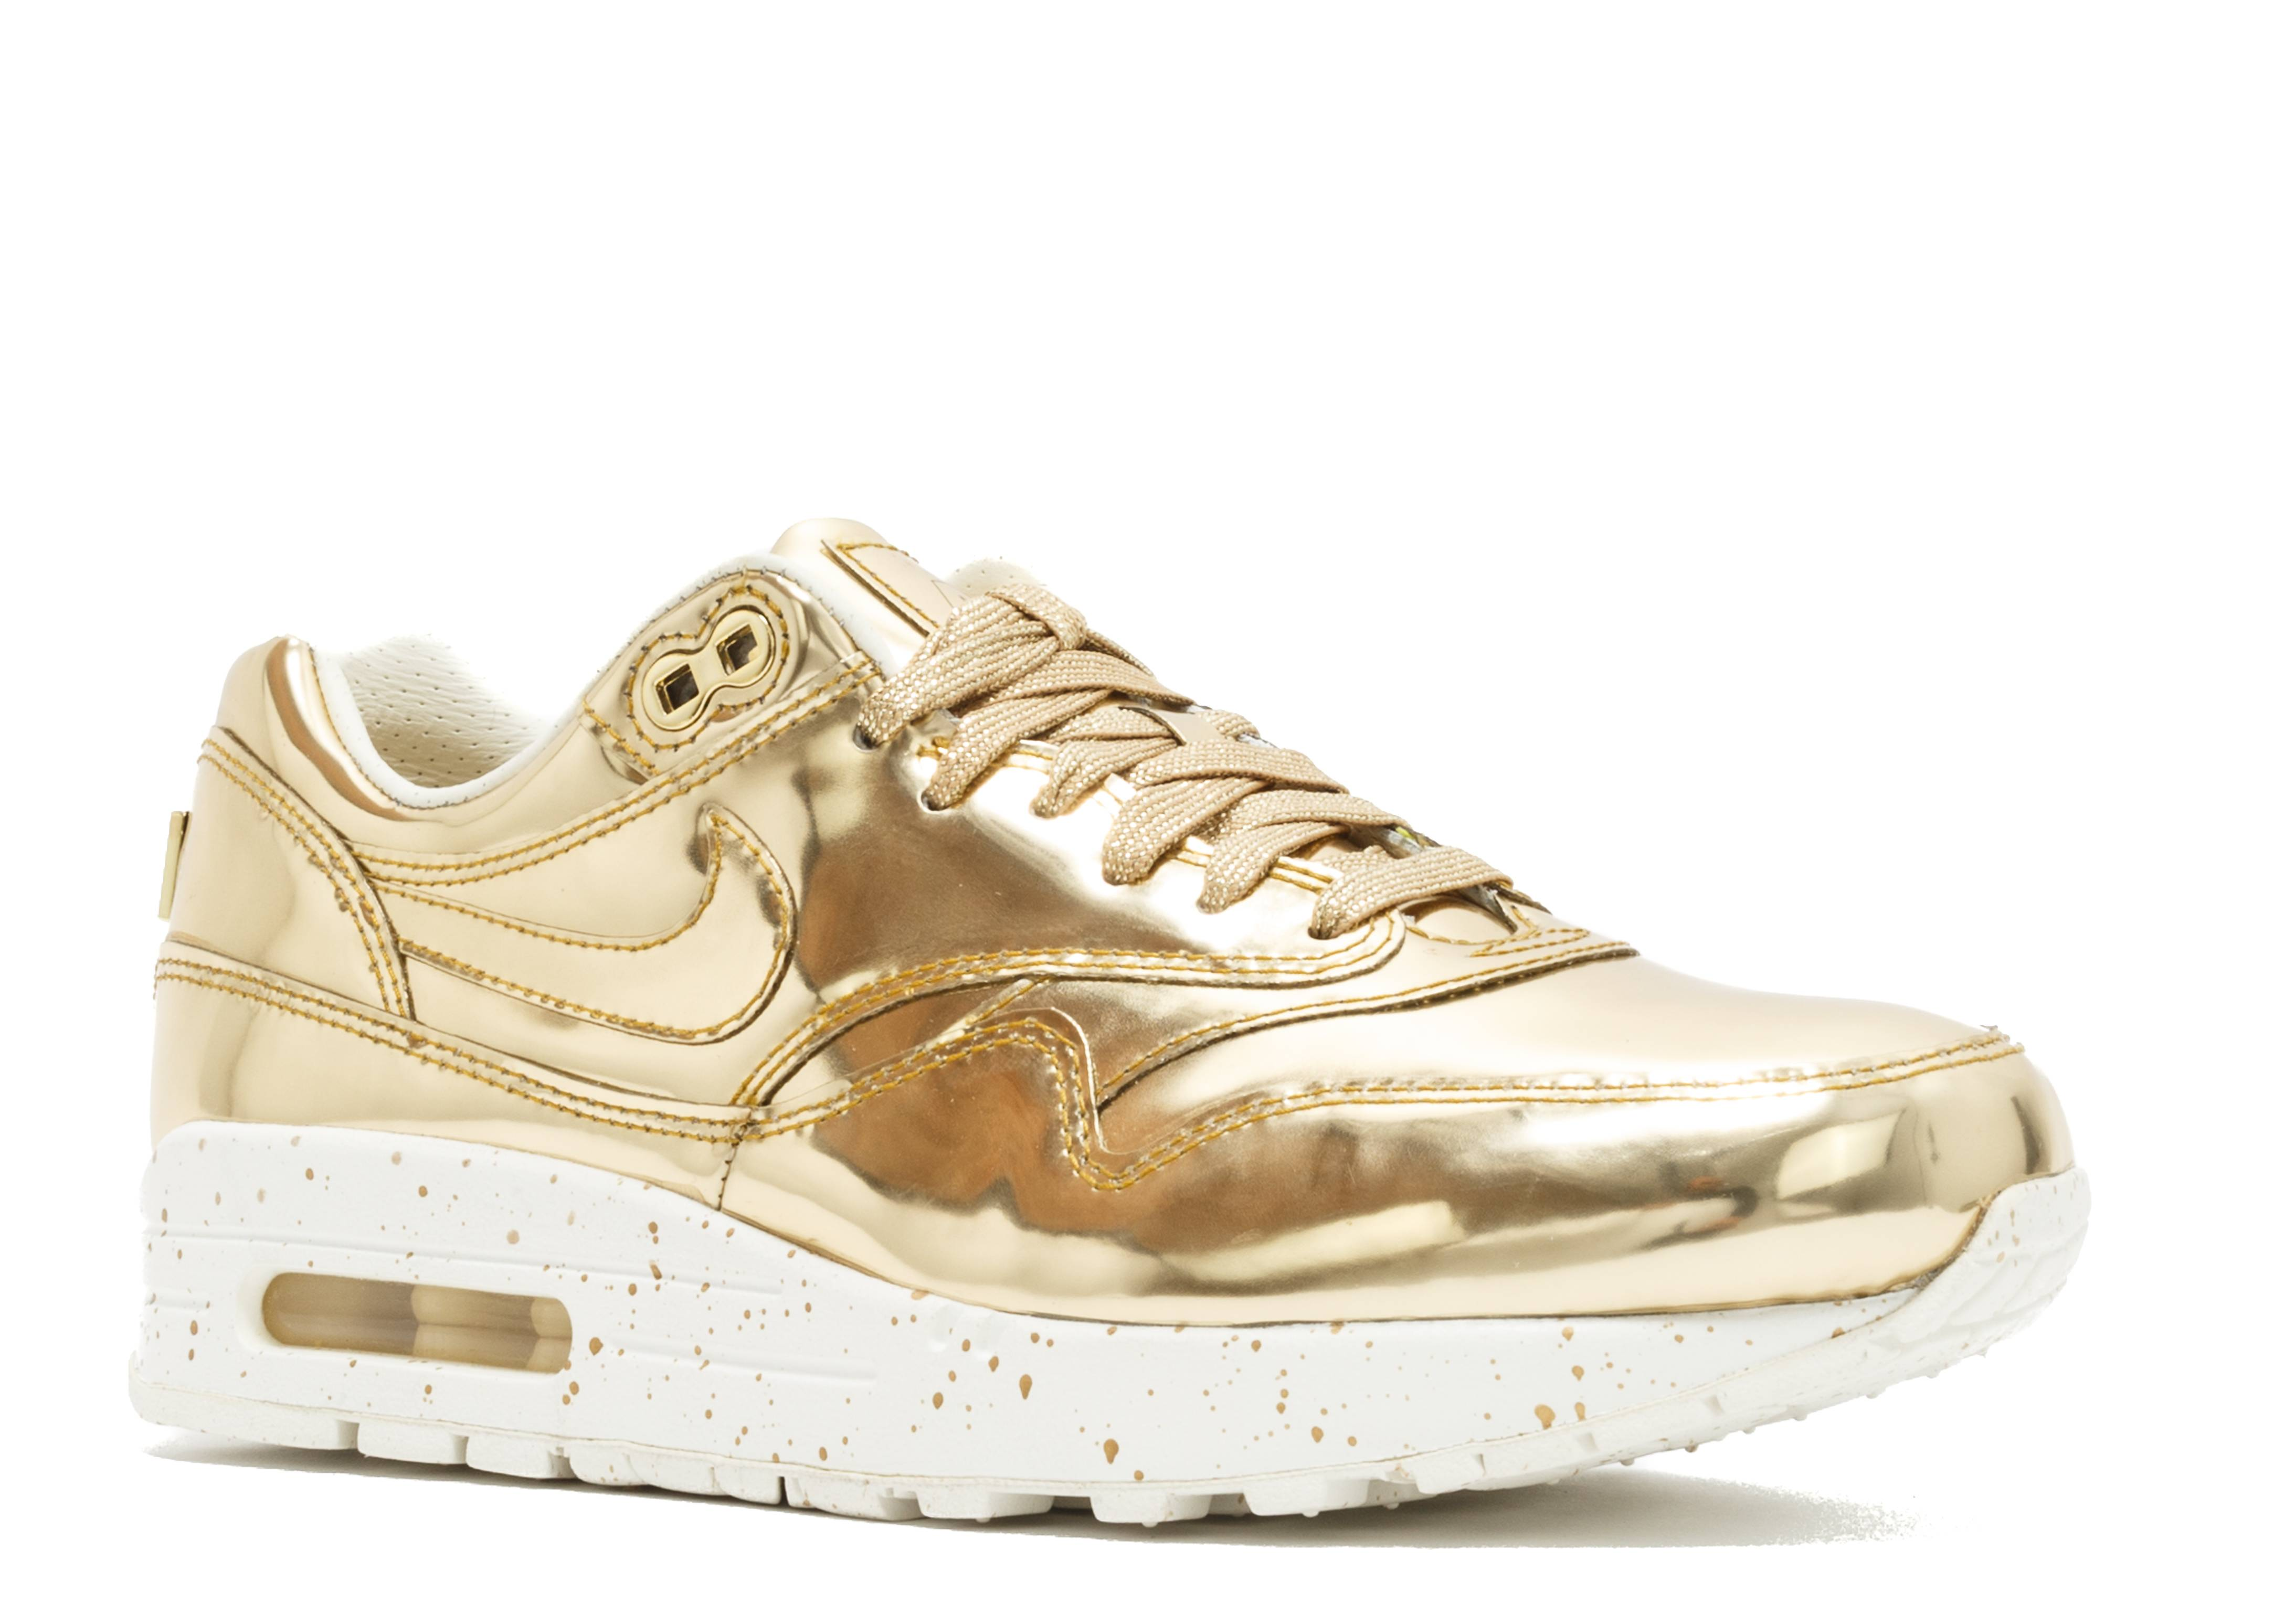 Release Reminder: Nike WMNS Air Max 1 SP 'Liquid Gold